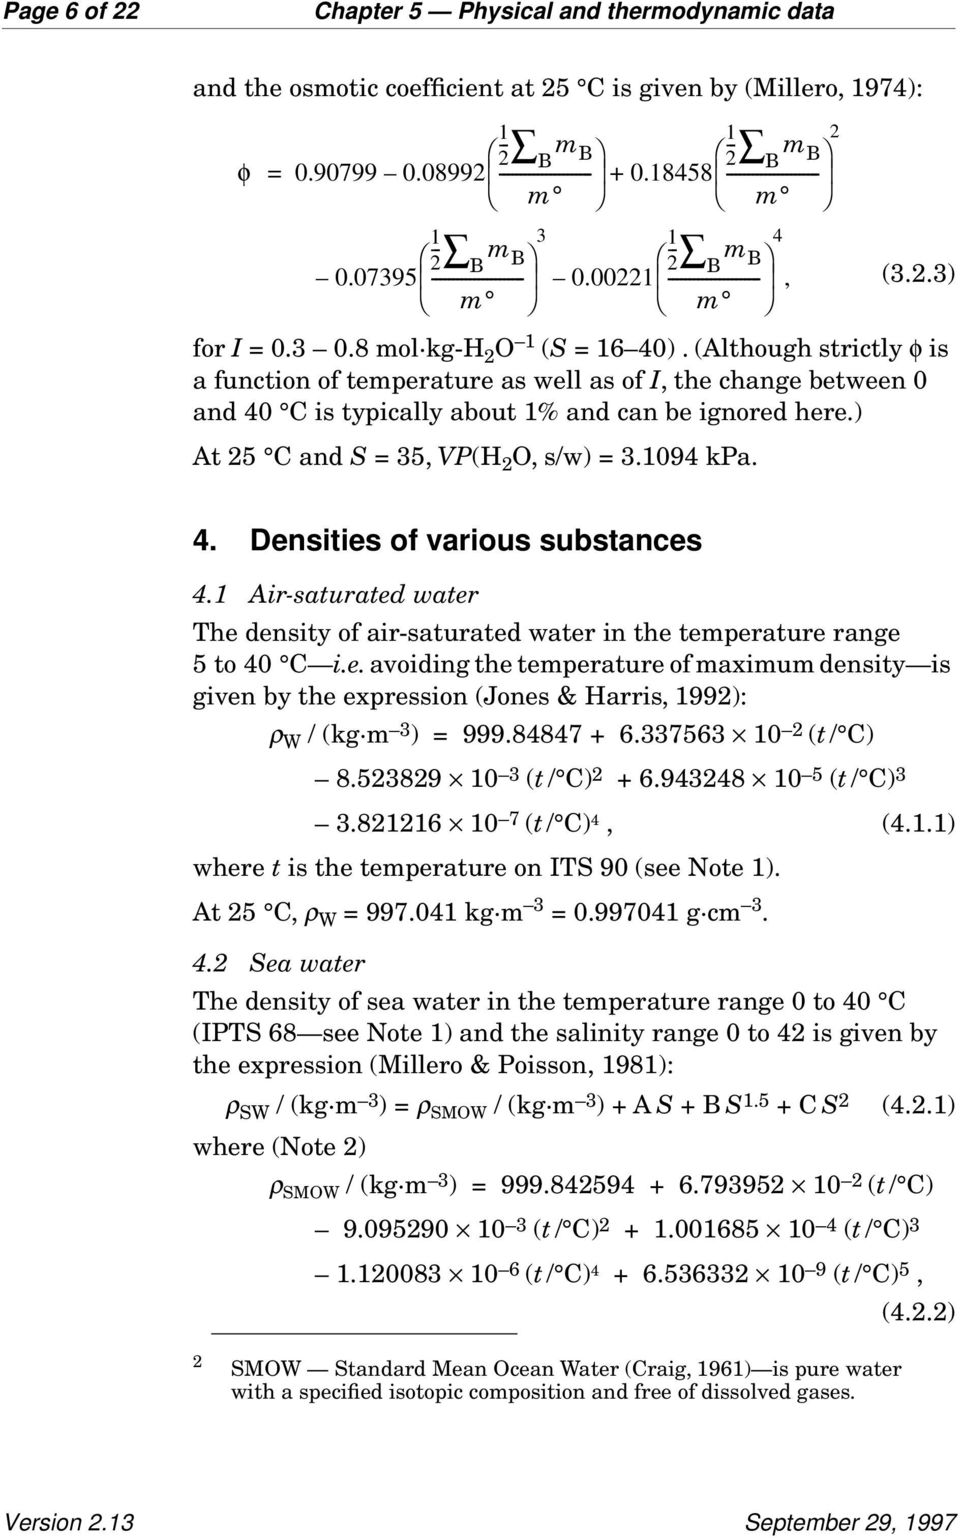 (Although strictly φ is a function of temperature as well as of I, the change between 0 and 40 C is typically about 1% and can be ignored here.) At 25 C and S = 35, VP(H 2 O, s/w) = 3.1094 kpa. 4. Densities of various substances 4.